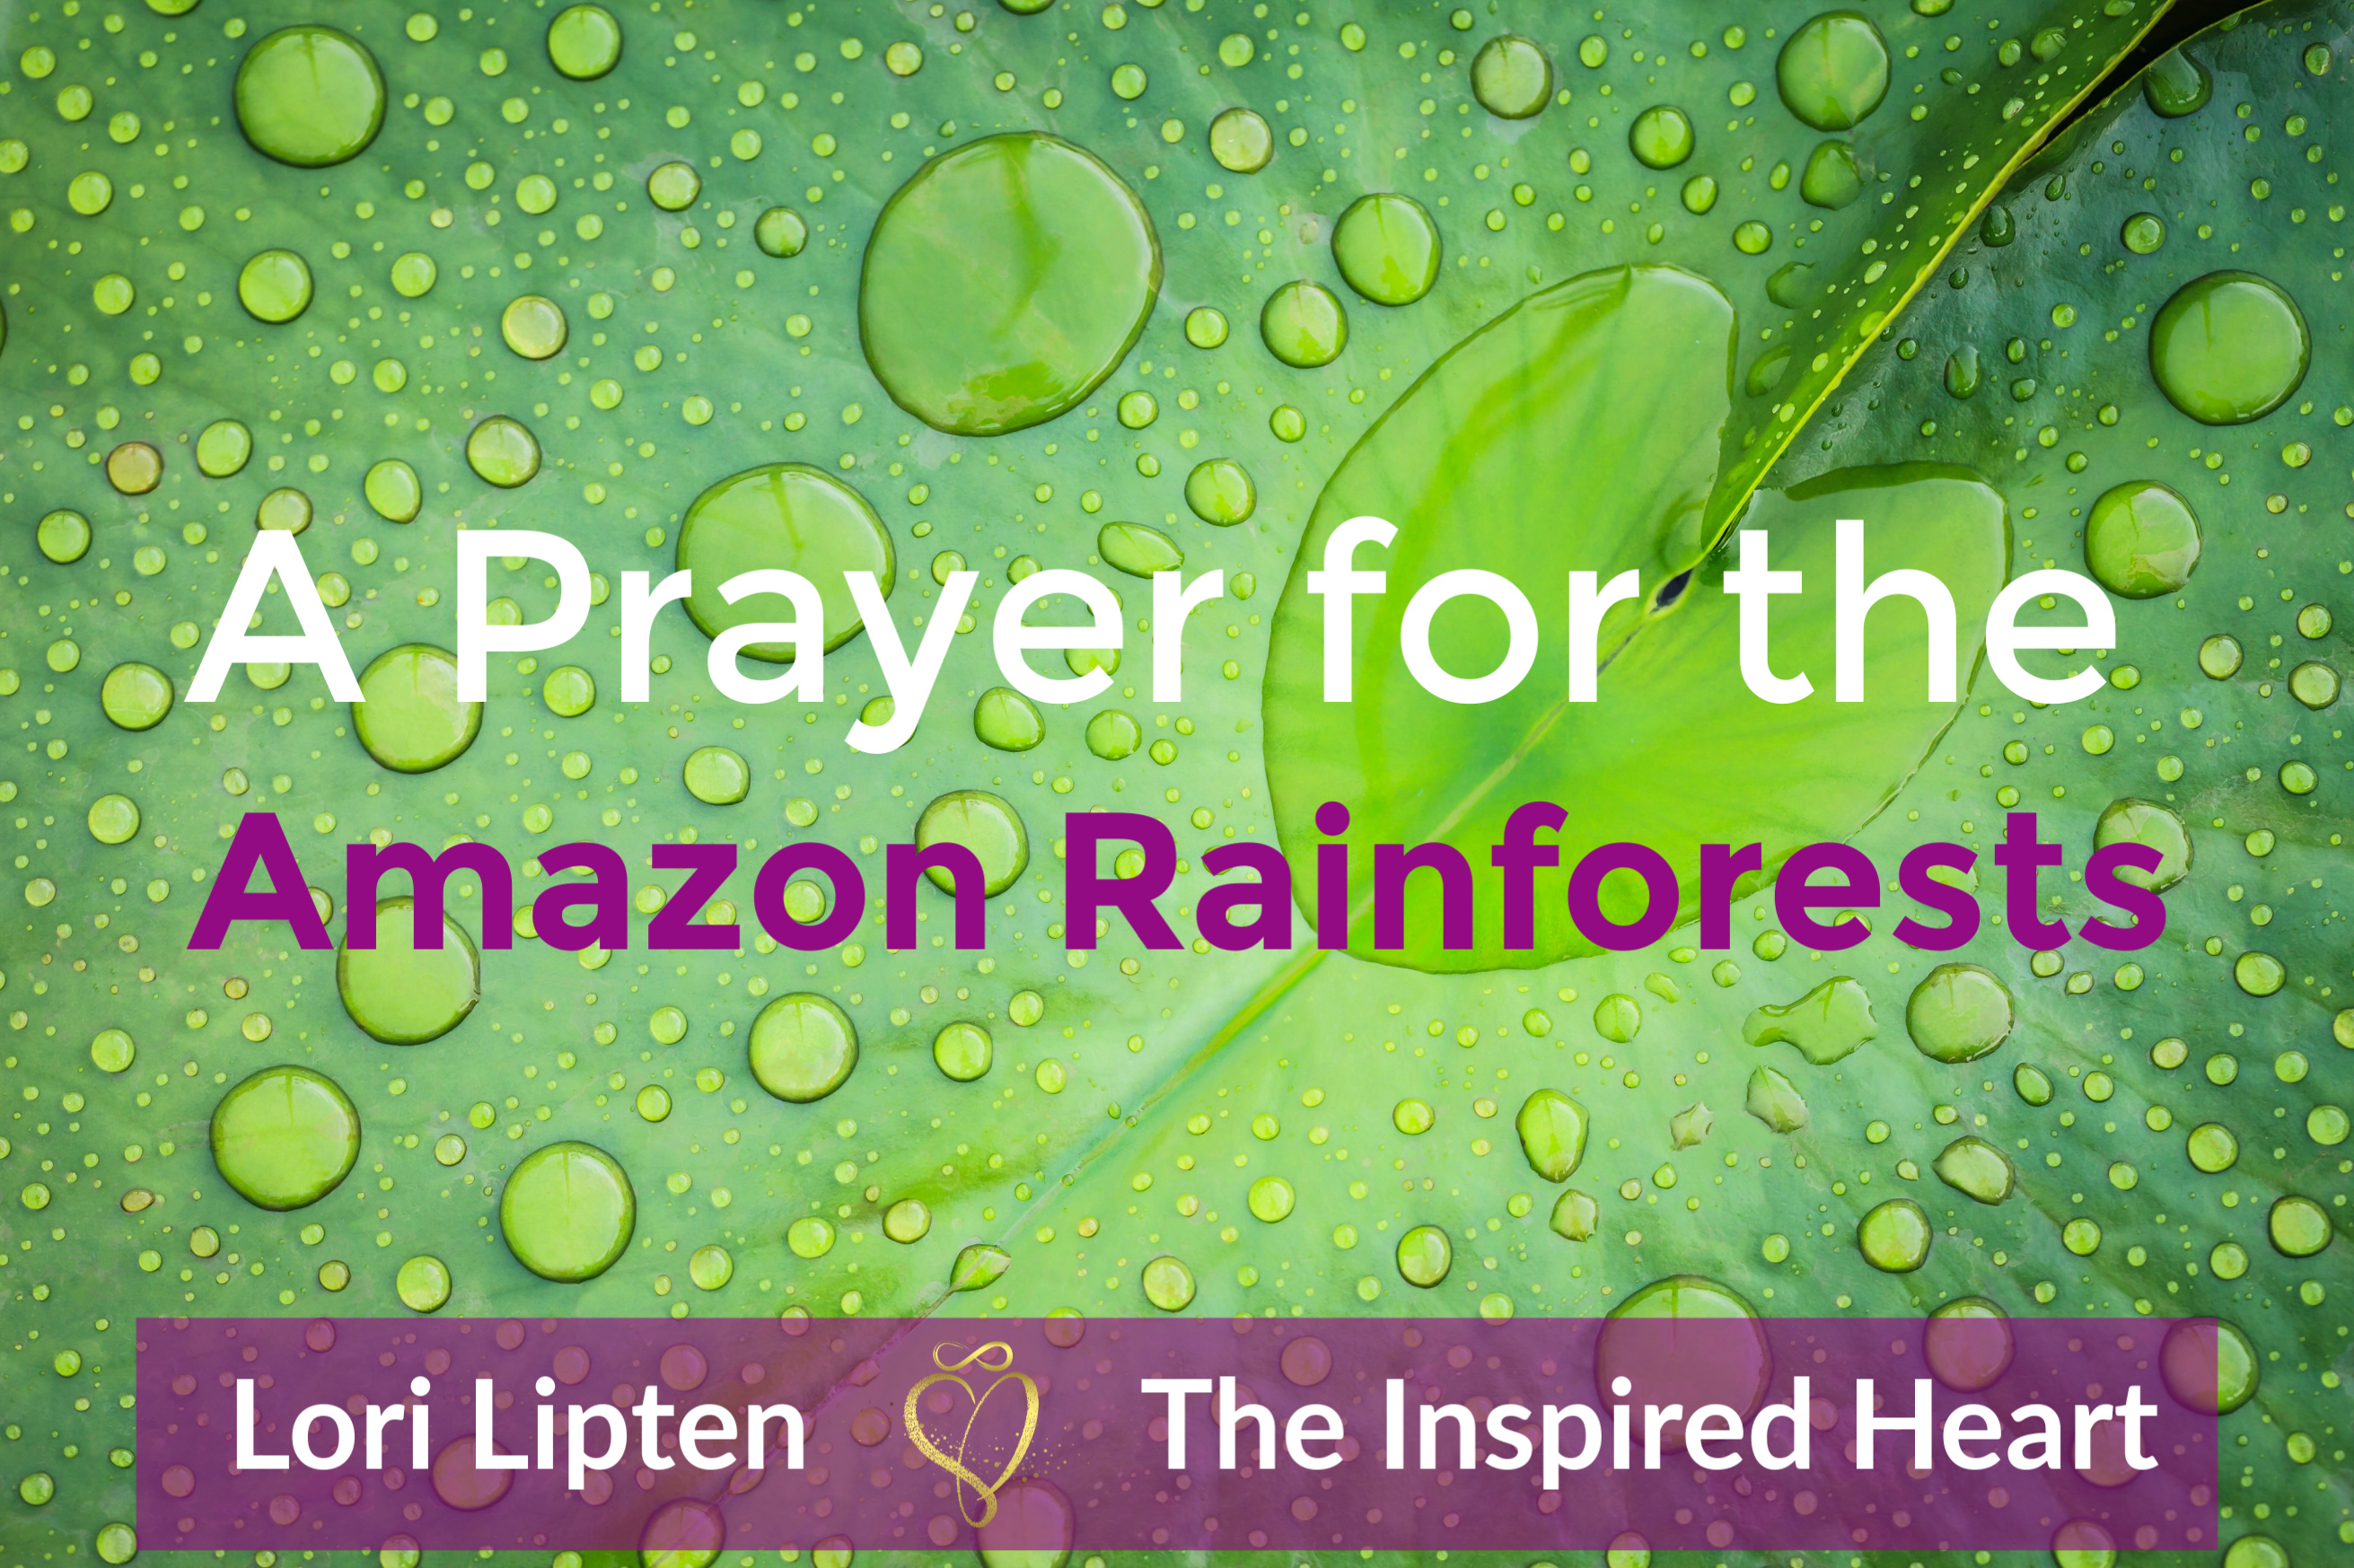 A Prayer for the Amazon Rainforests